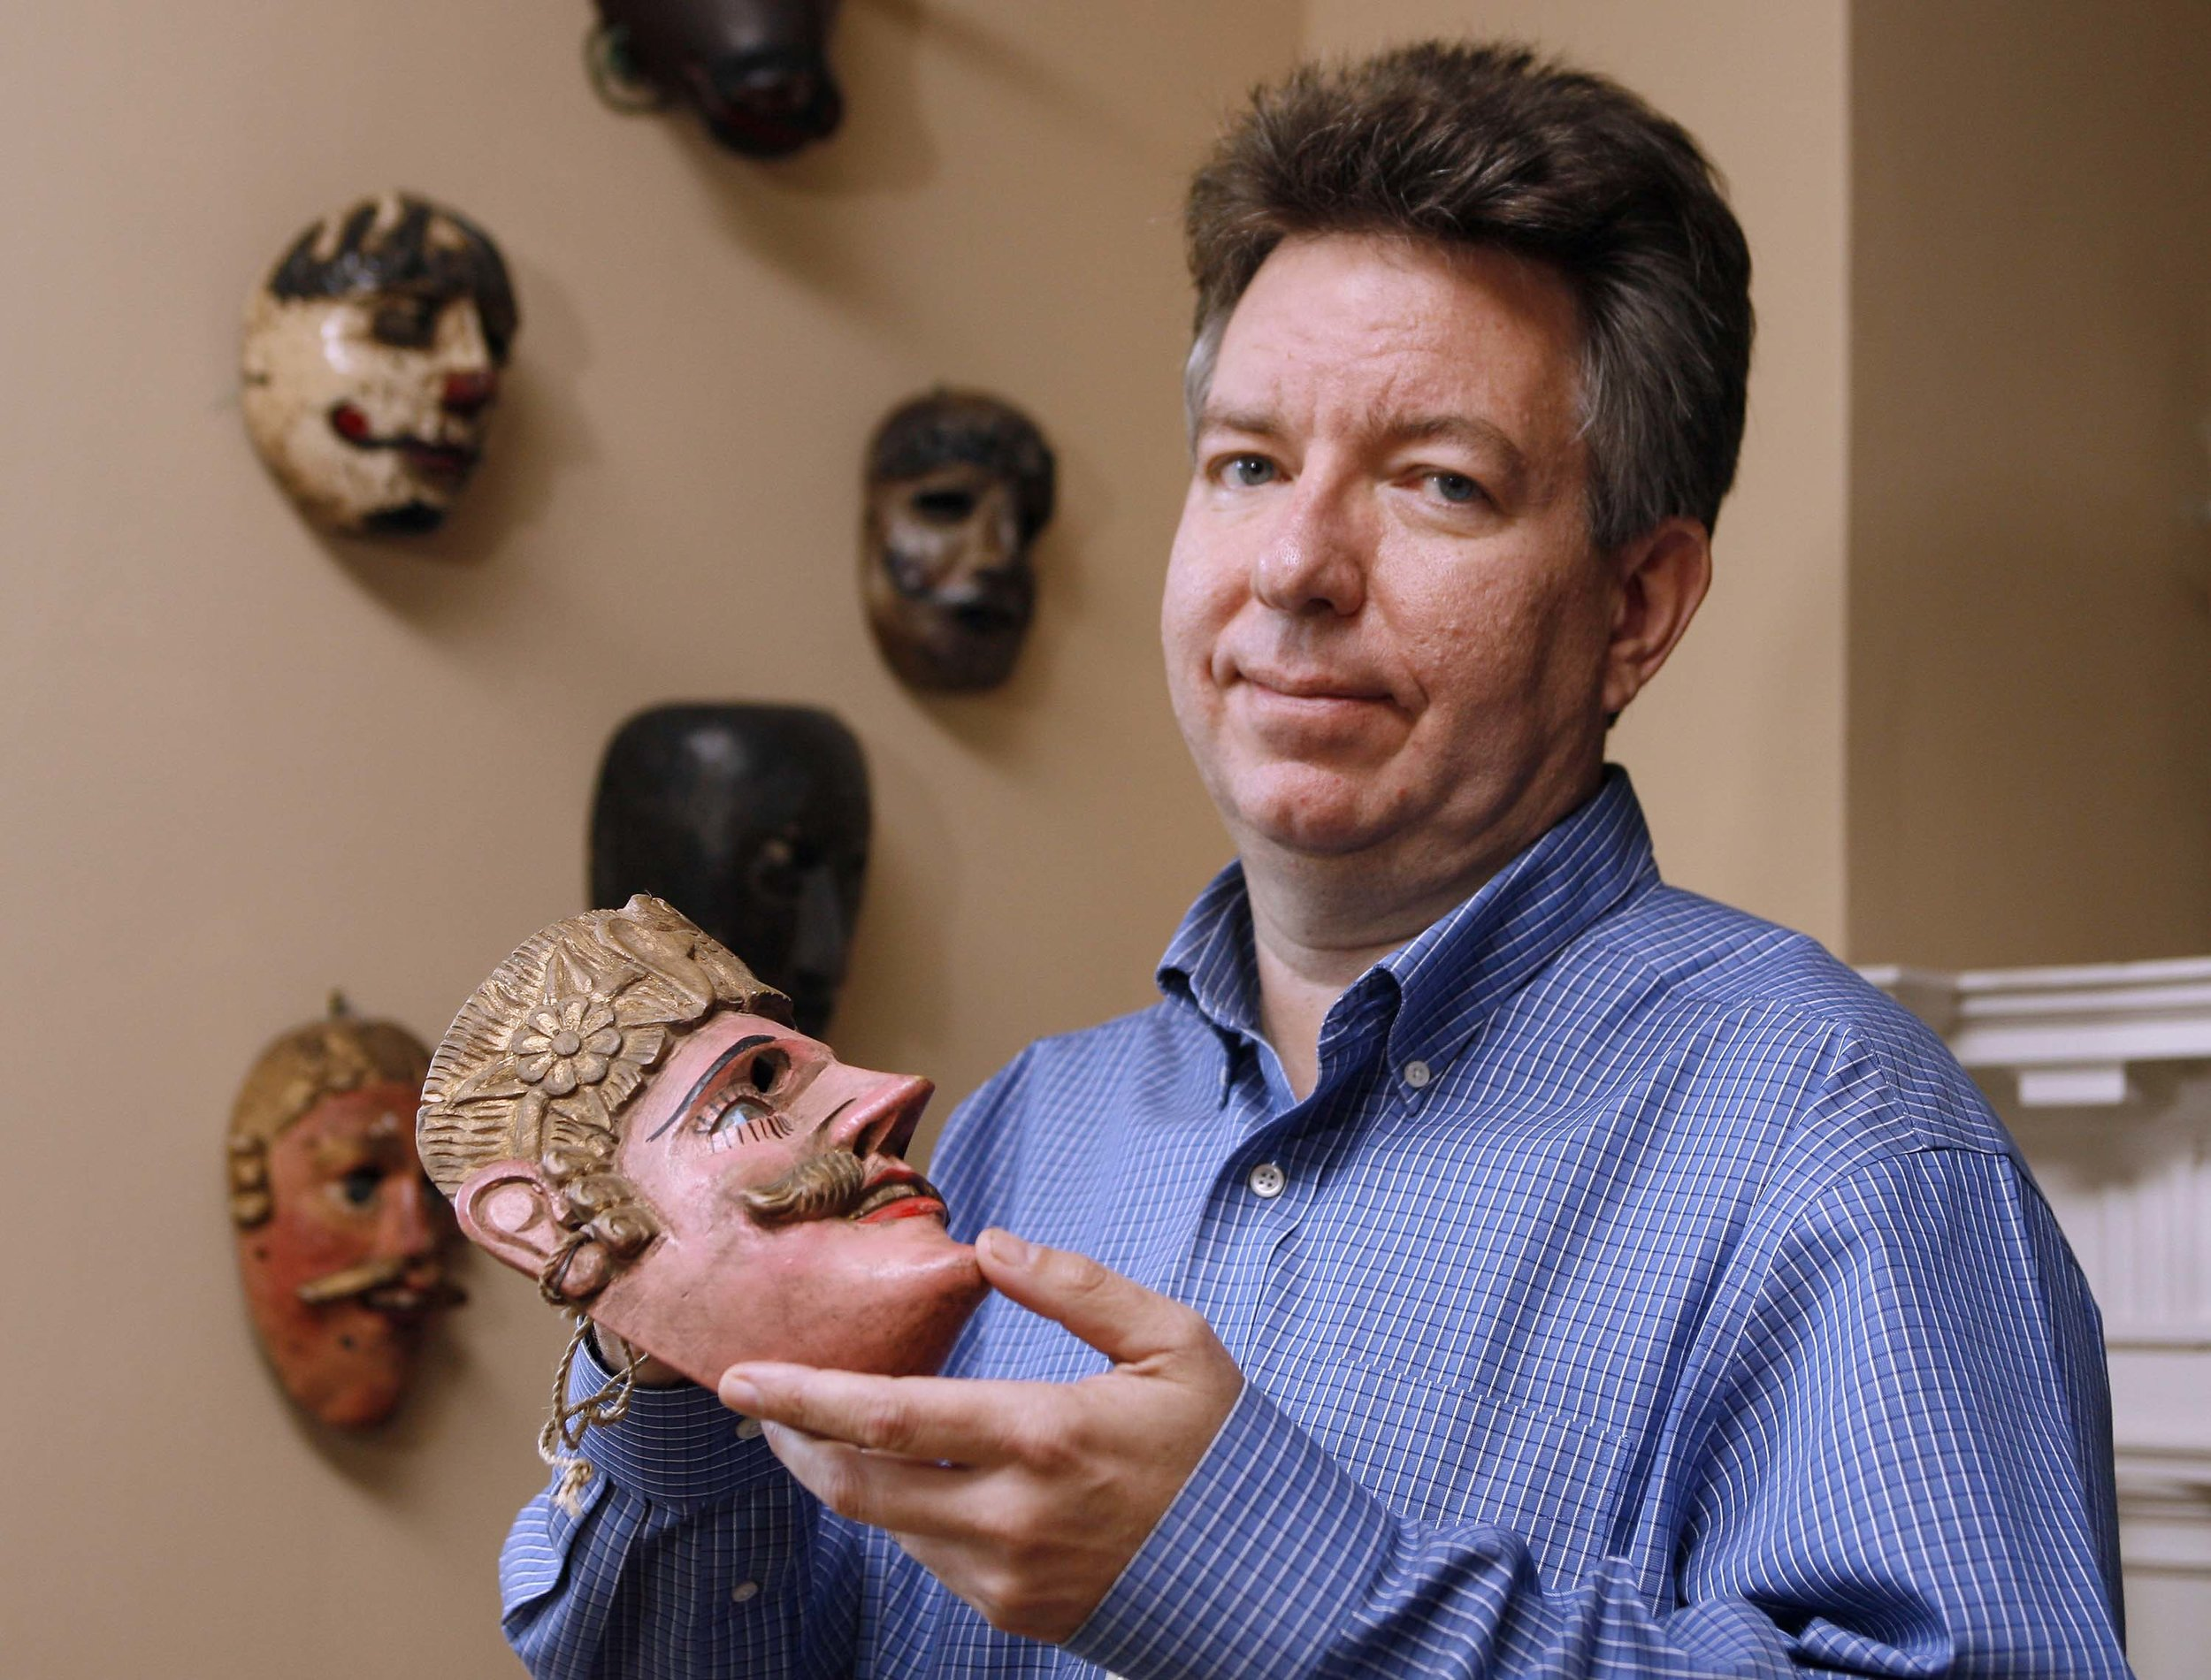 Brown University's Stephen D. Houston, the foremost figure within the Maya archaeology community. Photo: macfound.org